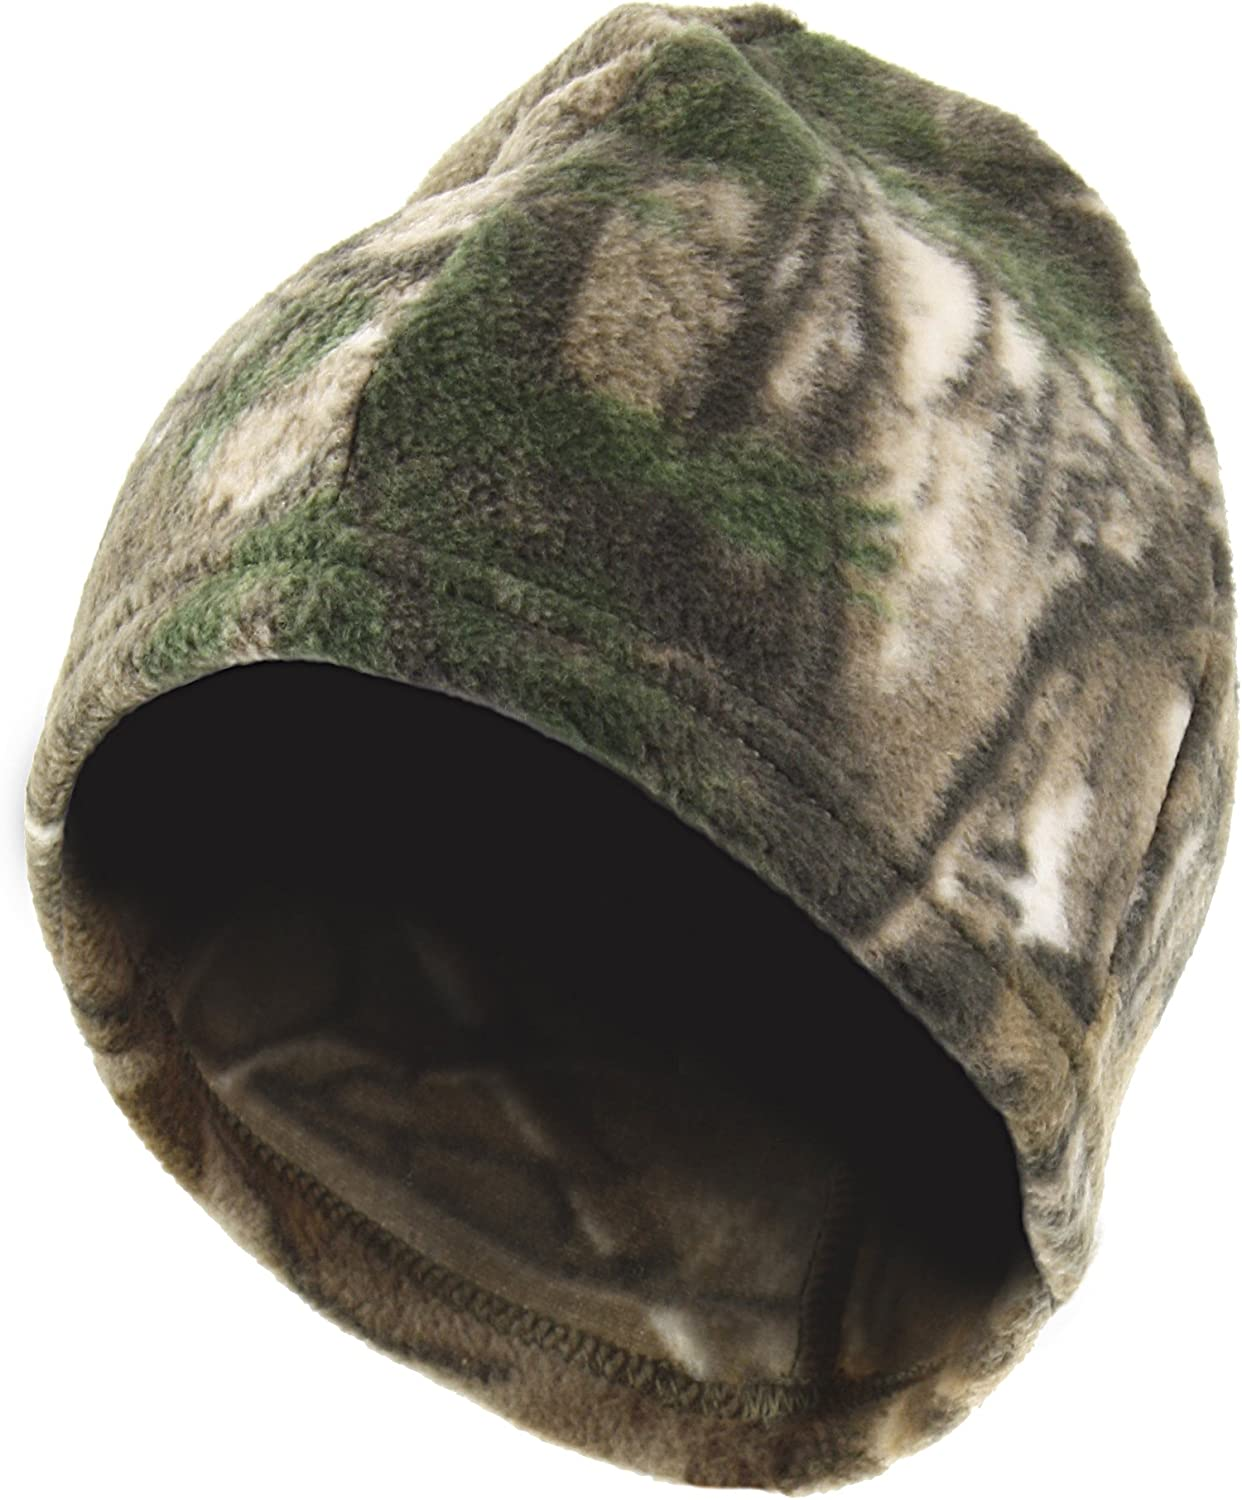 Zeek Outfitter Licensed Camouflage Reversible Fleece Beanie with Polygiene